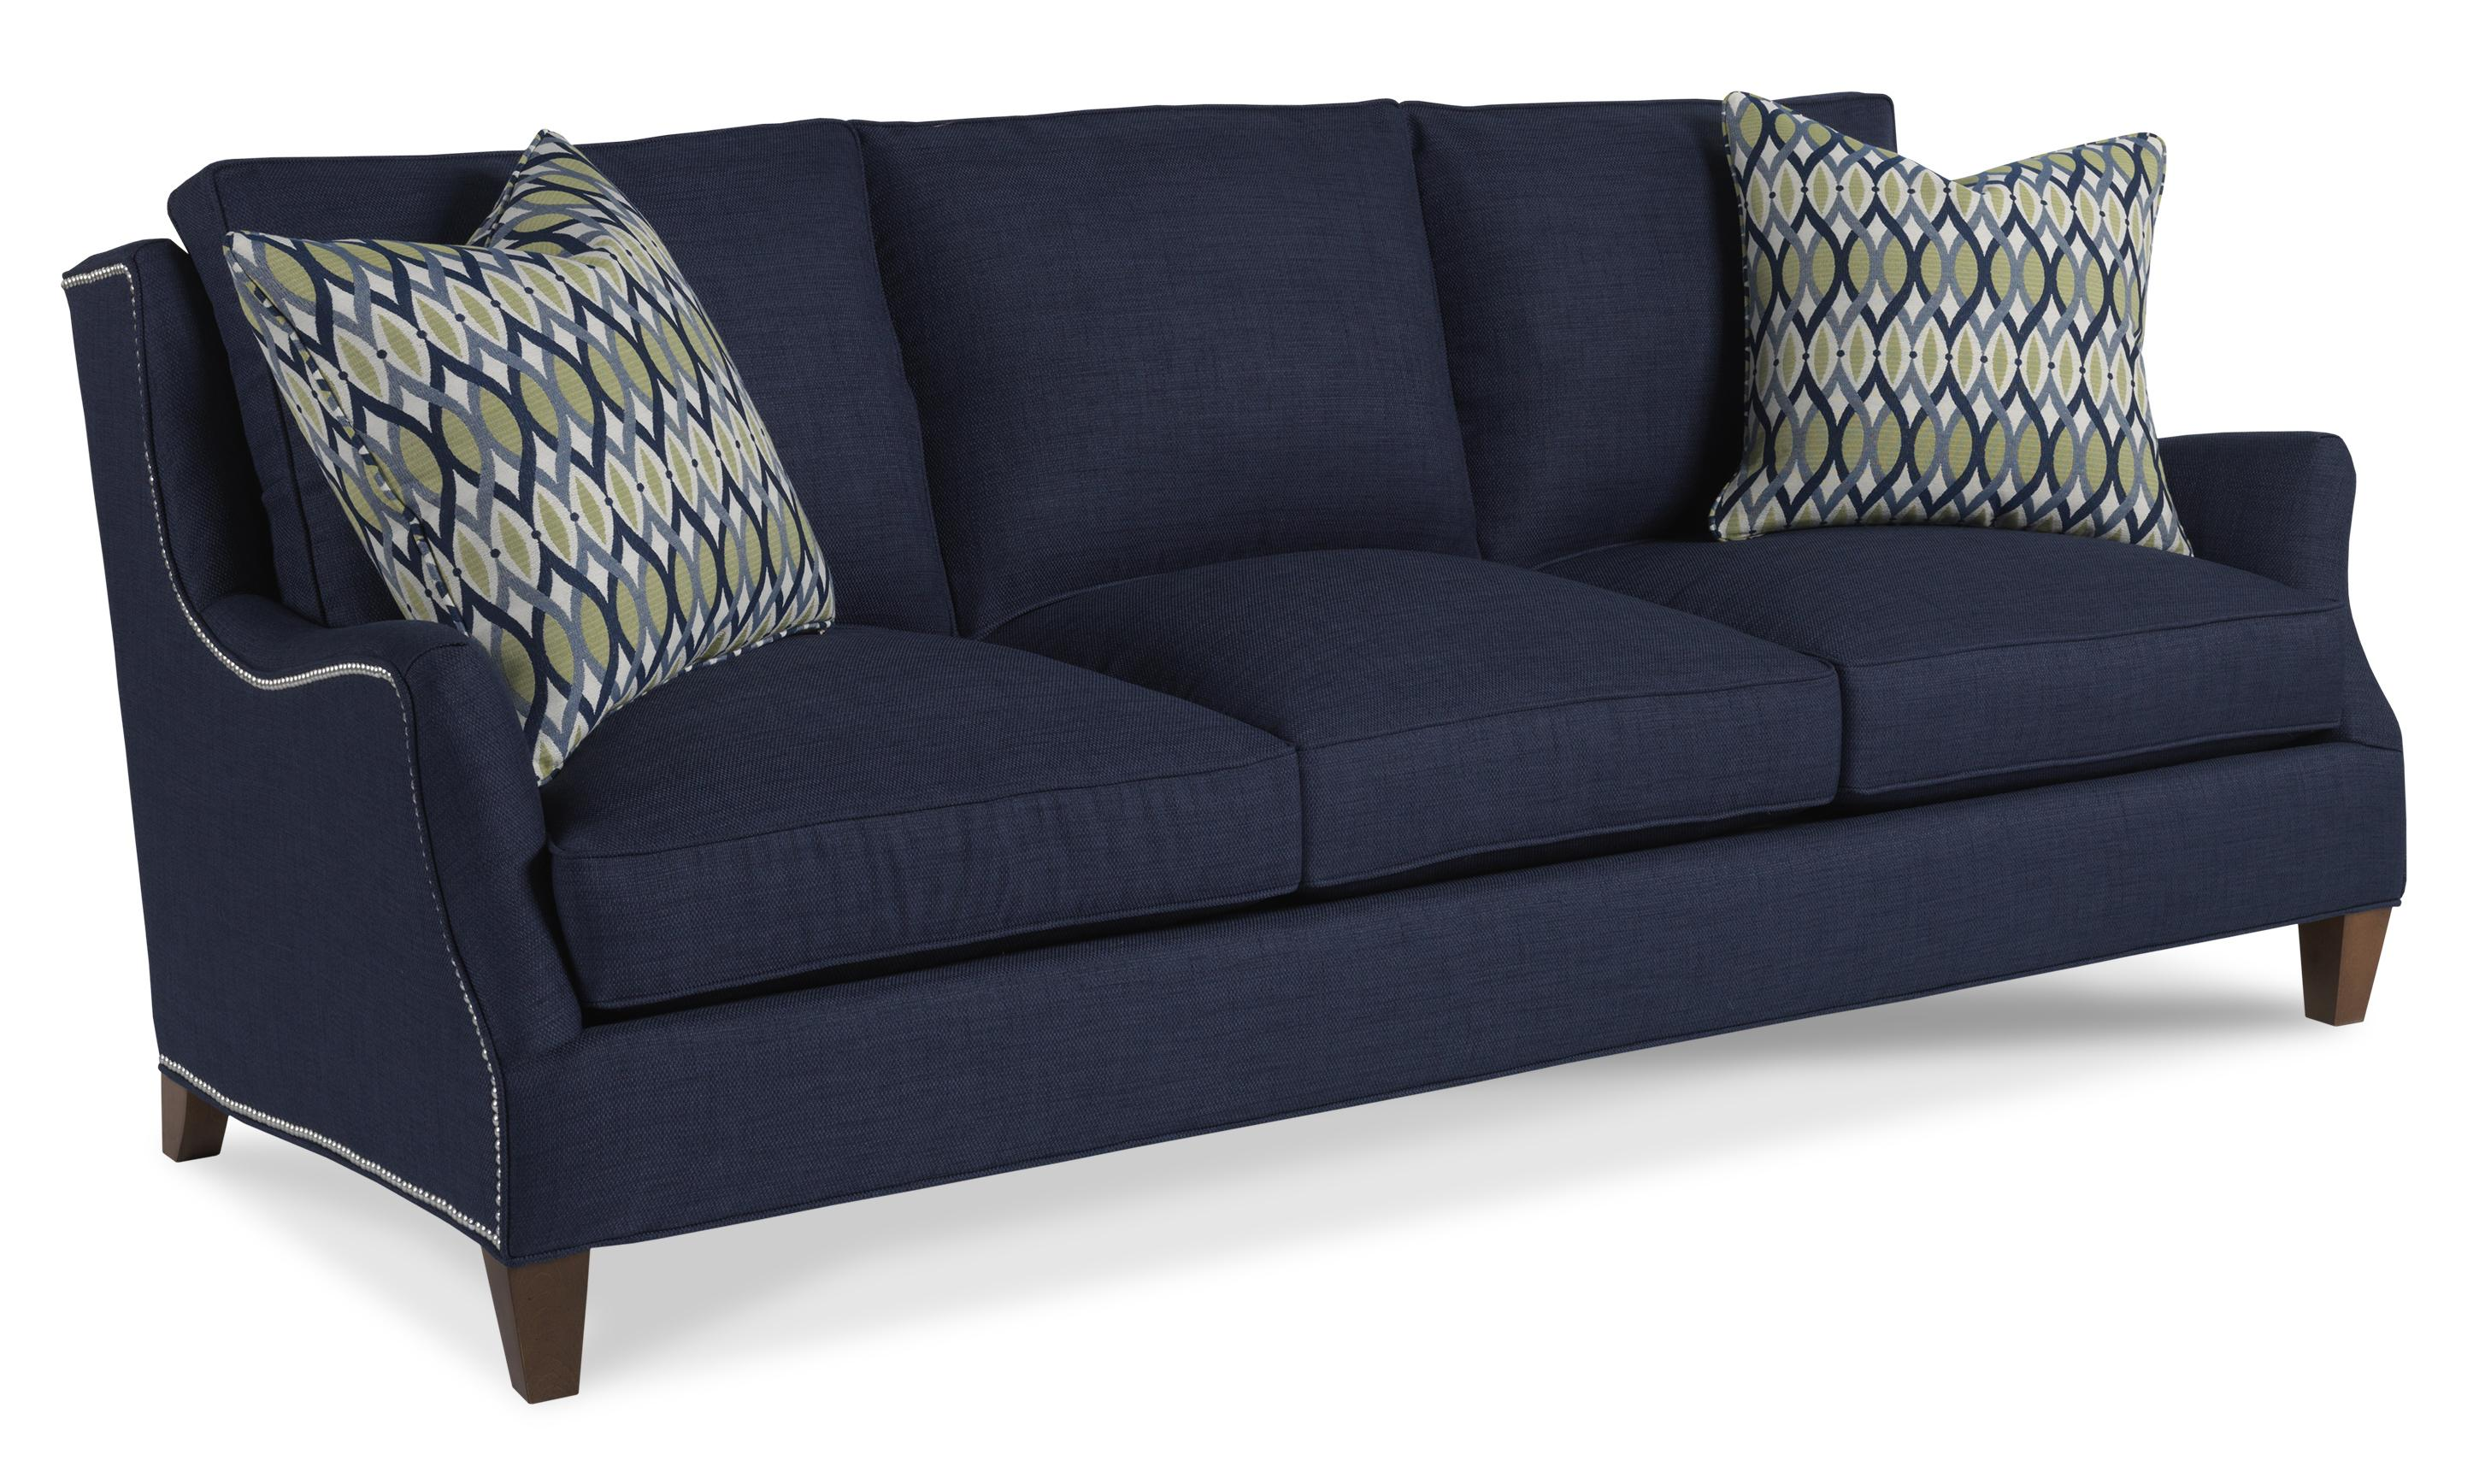 Sam Moore Tansy 3 Seater Stationary Sofa   Item Number: 7027 002